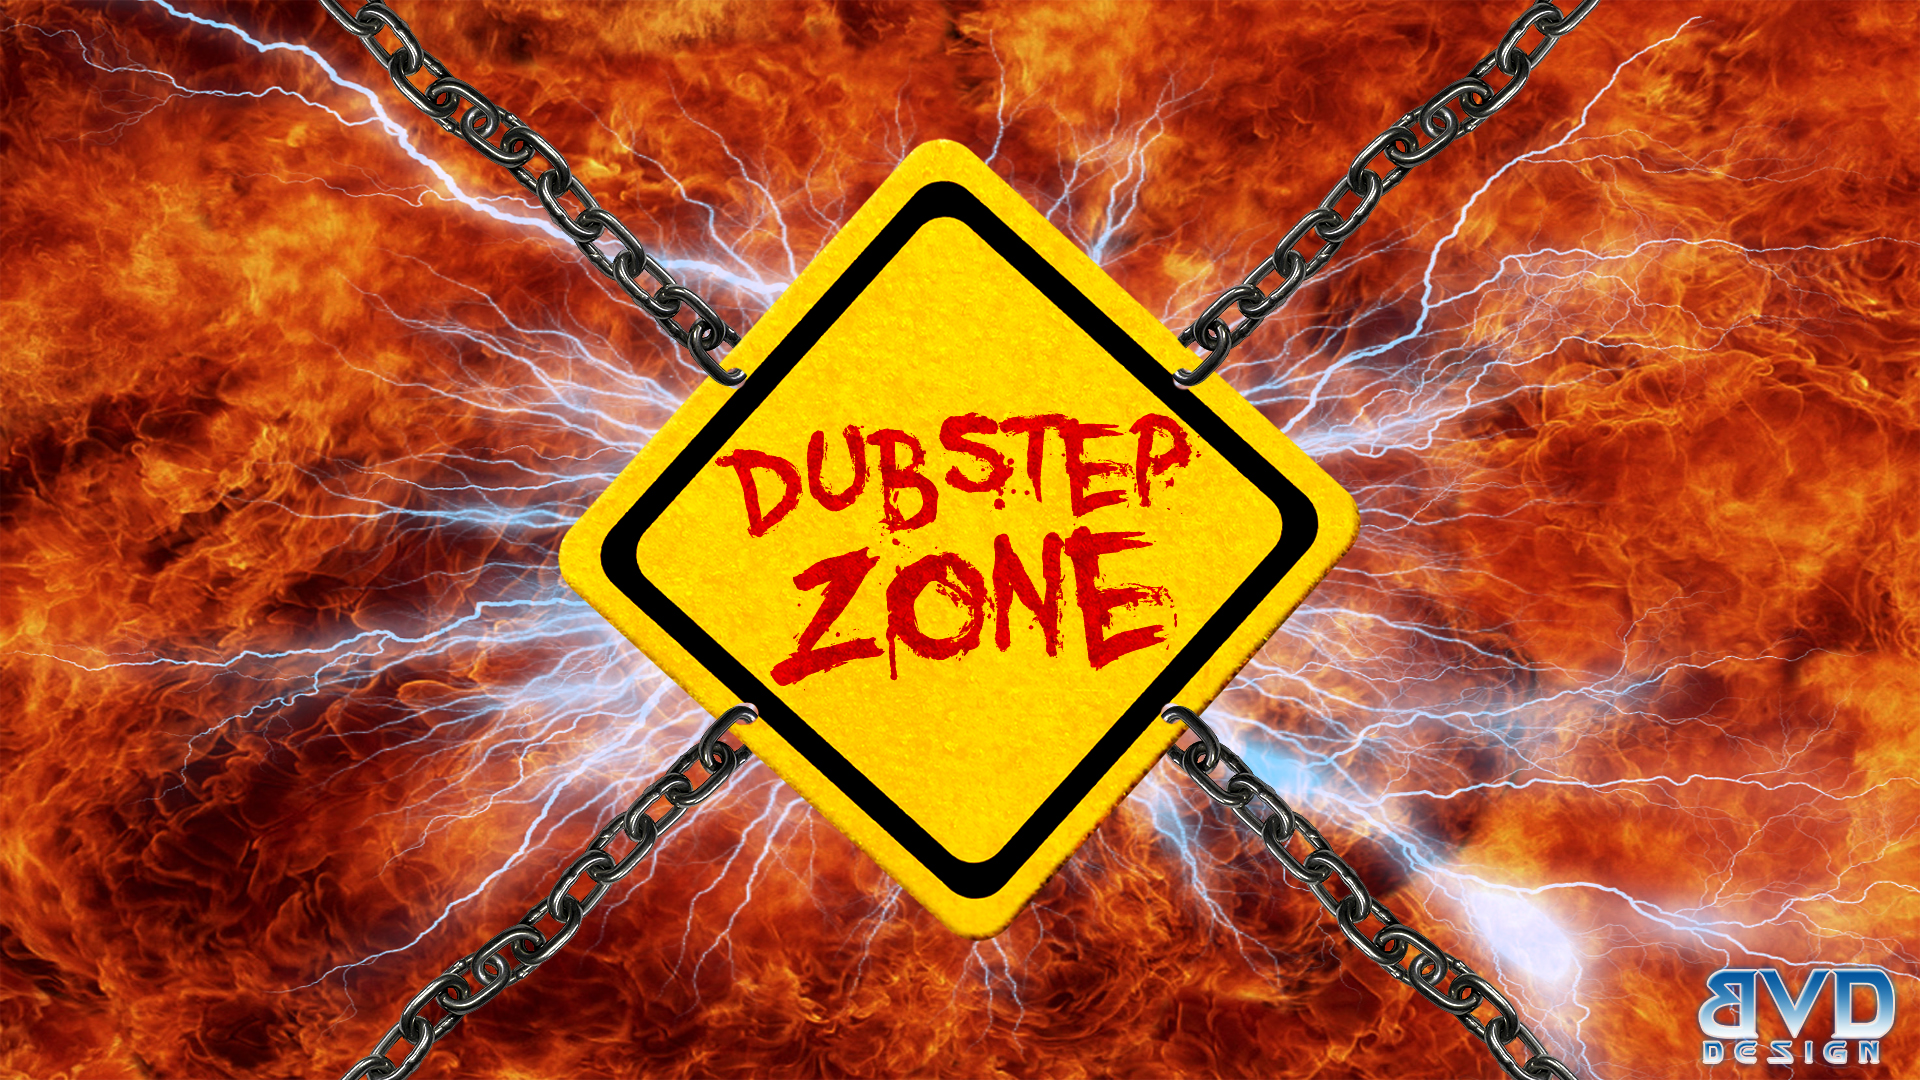 Dubstep Wallpaper, Gallery of 38 Dubstep Backgrounds, Wallpapers ...